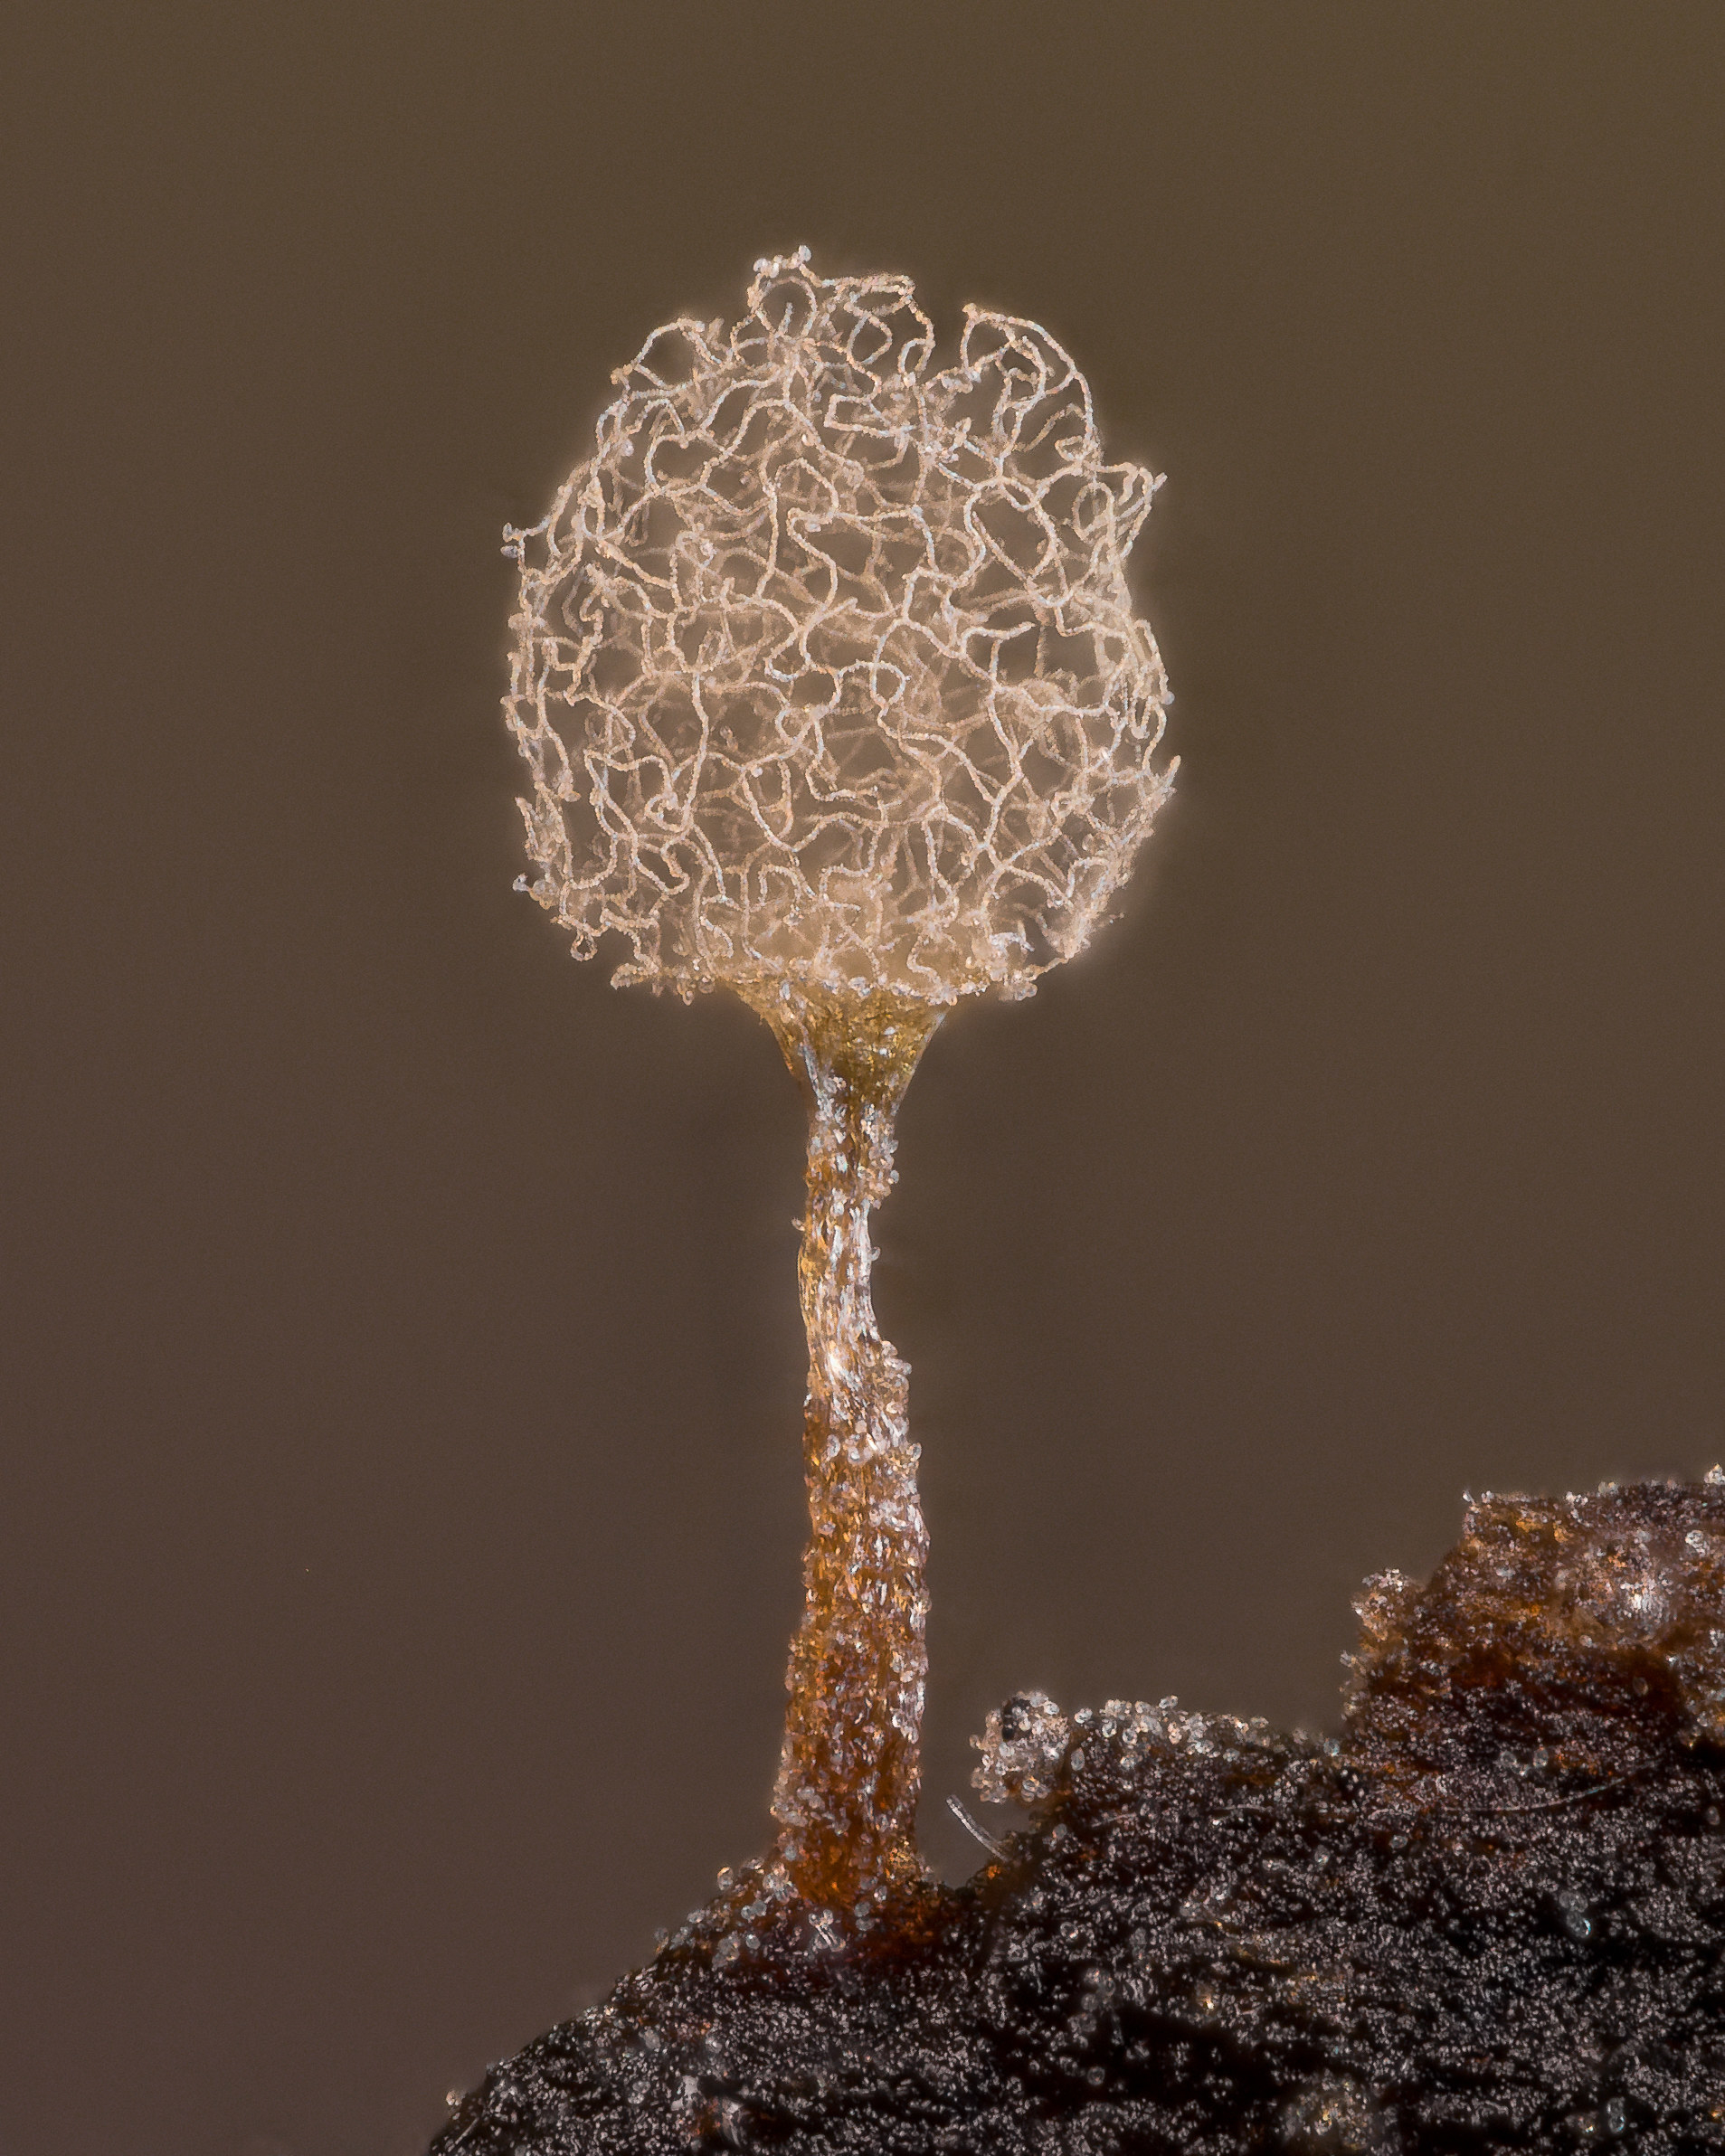 A close-up of a slime mold mushroom with a fluffy top